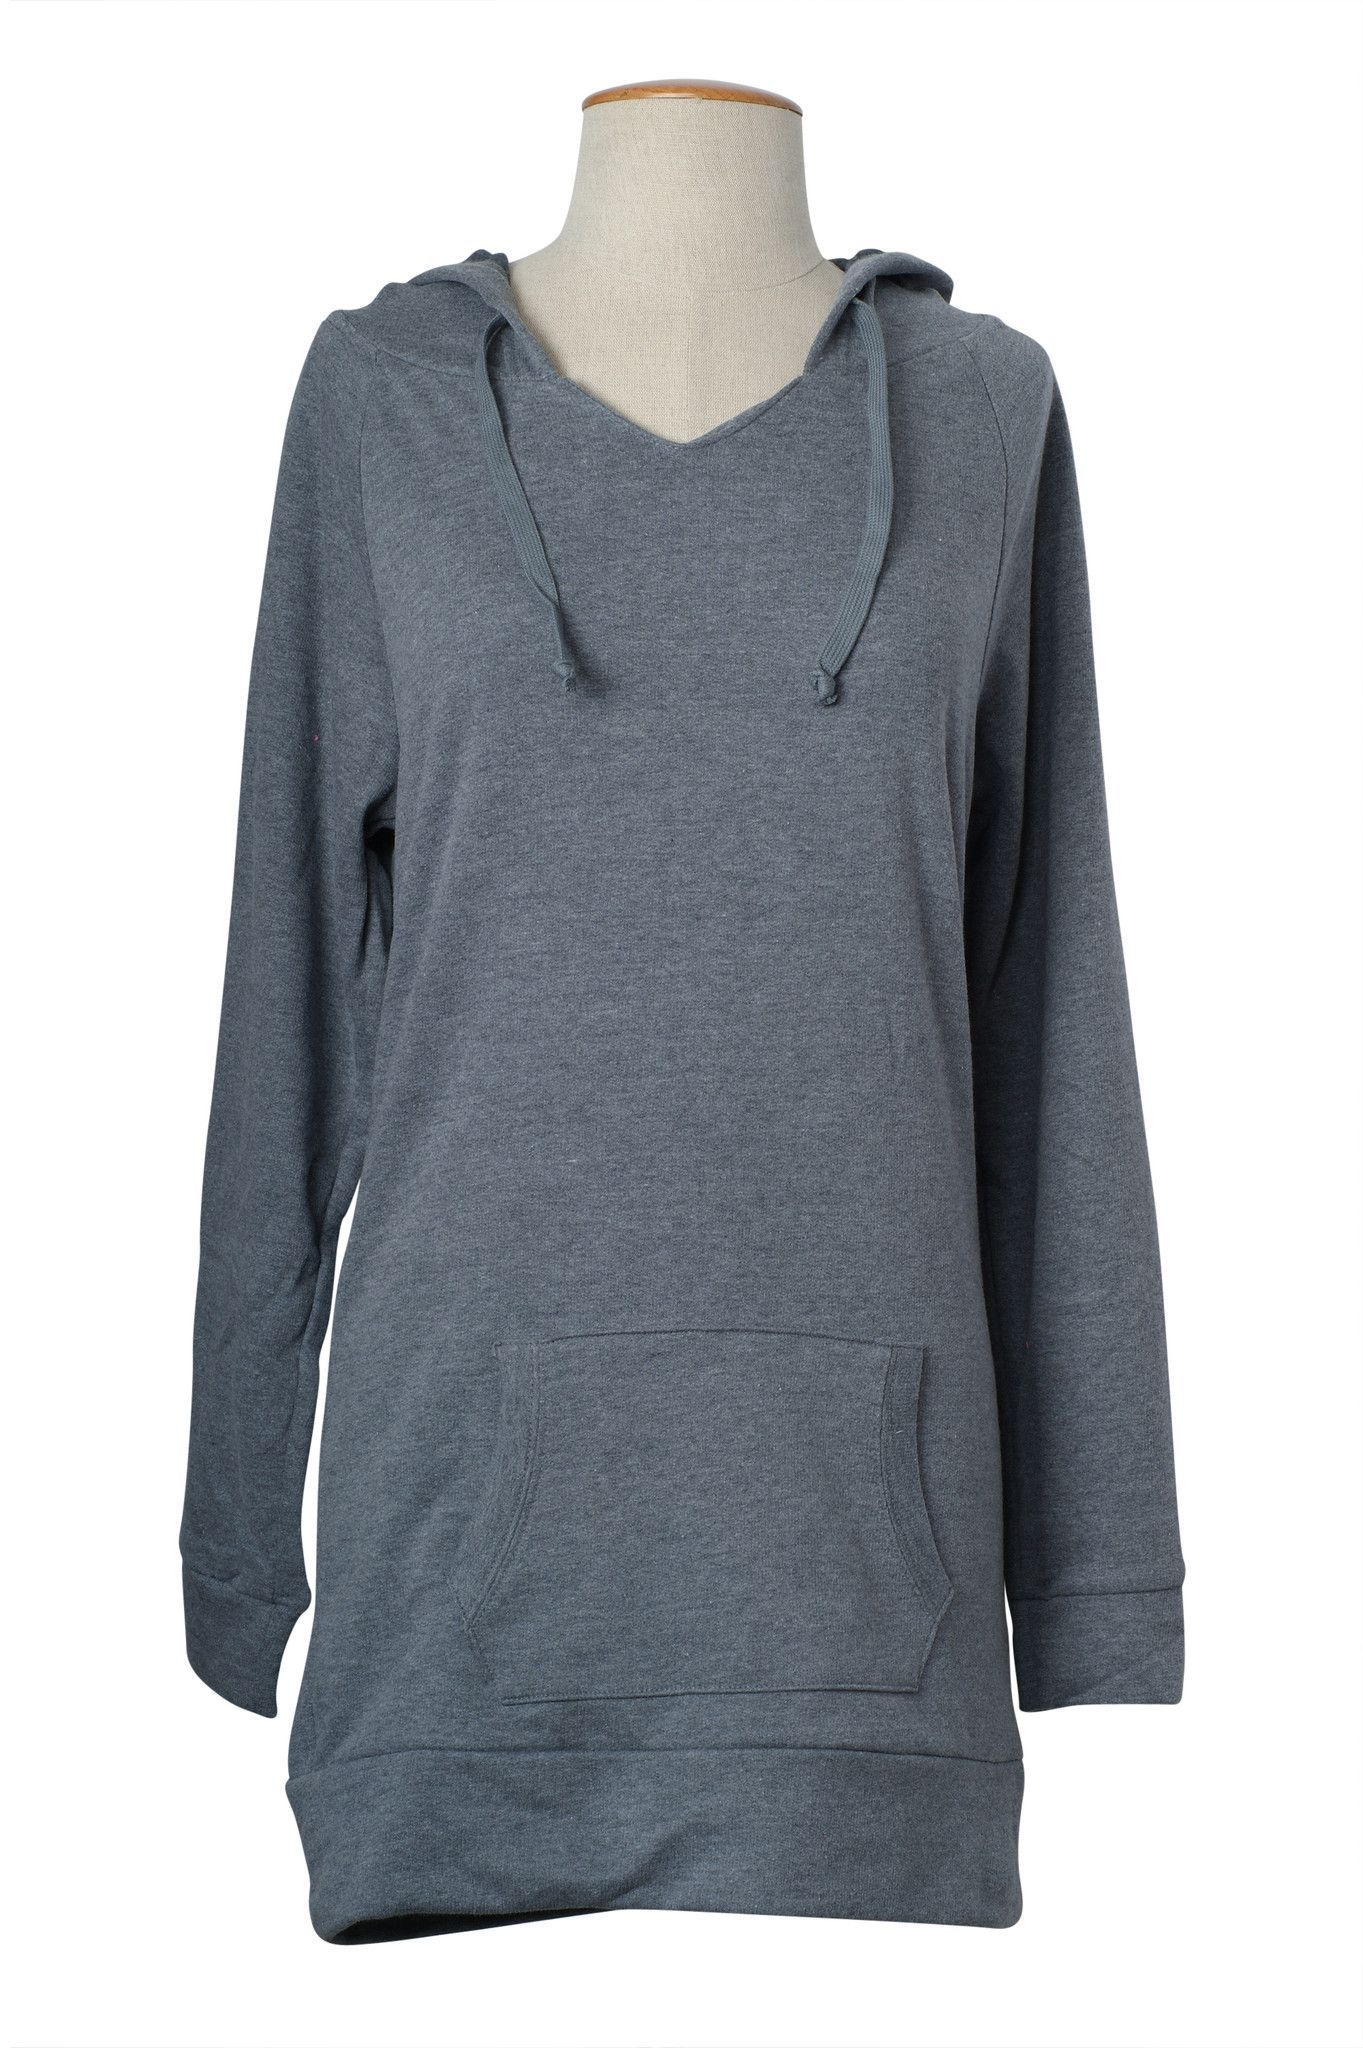 Comfy Solid Pullover Hooded Long Tunic Sweater Top | Tunic sweater ...